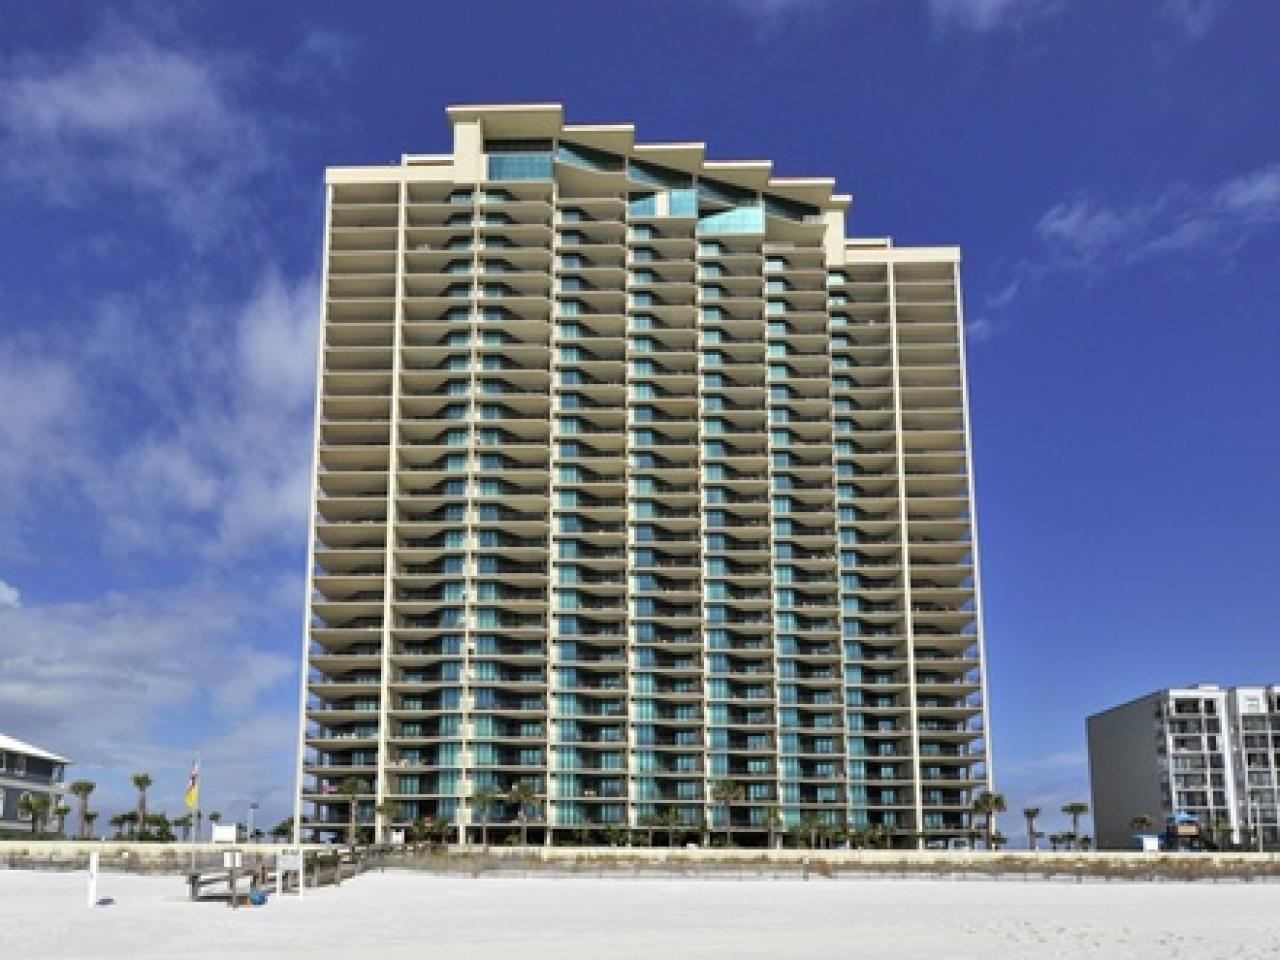 Phoenix west 1501 4 bedroom vacation condo rental orange beach al 99653 fr 4 bedroom condos in orange beach al